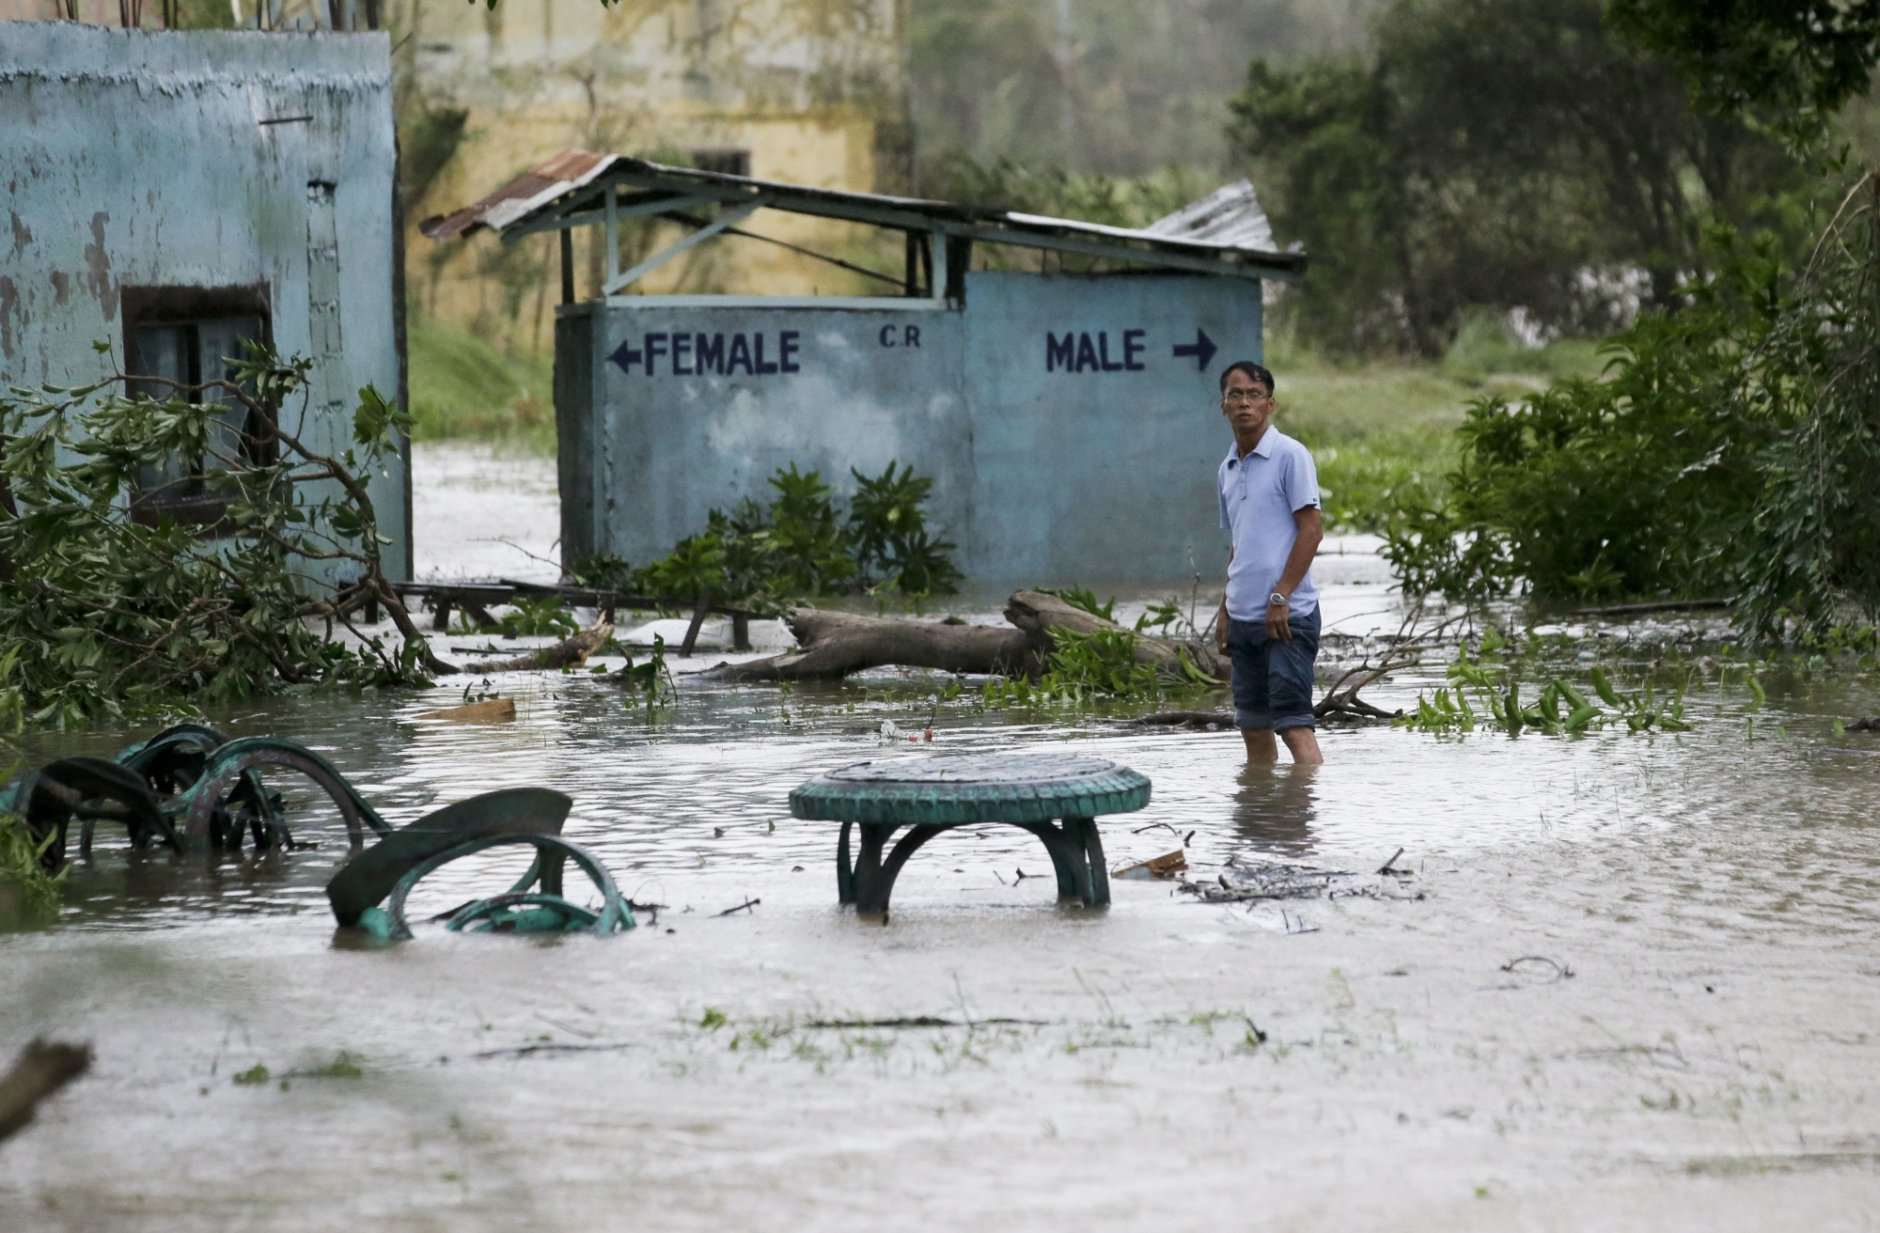 A resident wades along a flooded area as Typhoon Mangkhut barreled across Tuguegarao city in Cagayan province, northeastern Philippines on Saturday, Sept. 15, 2018. The typhoon slammed into the Philippines northeastern coast early Saturday, it's ferocious winds and blinding rain ripping off tin roof sheets and knocking out power, and plowed through the agricultural region at the start of the onslaught. (AP Photo/Aaron Favila)